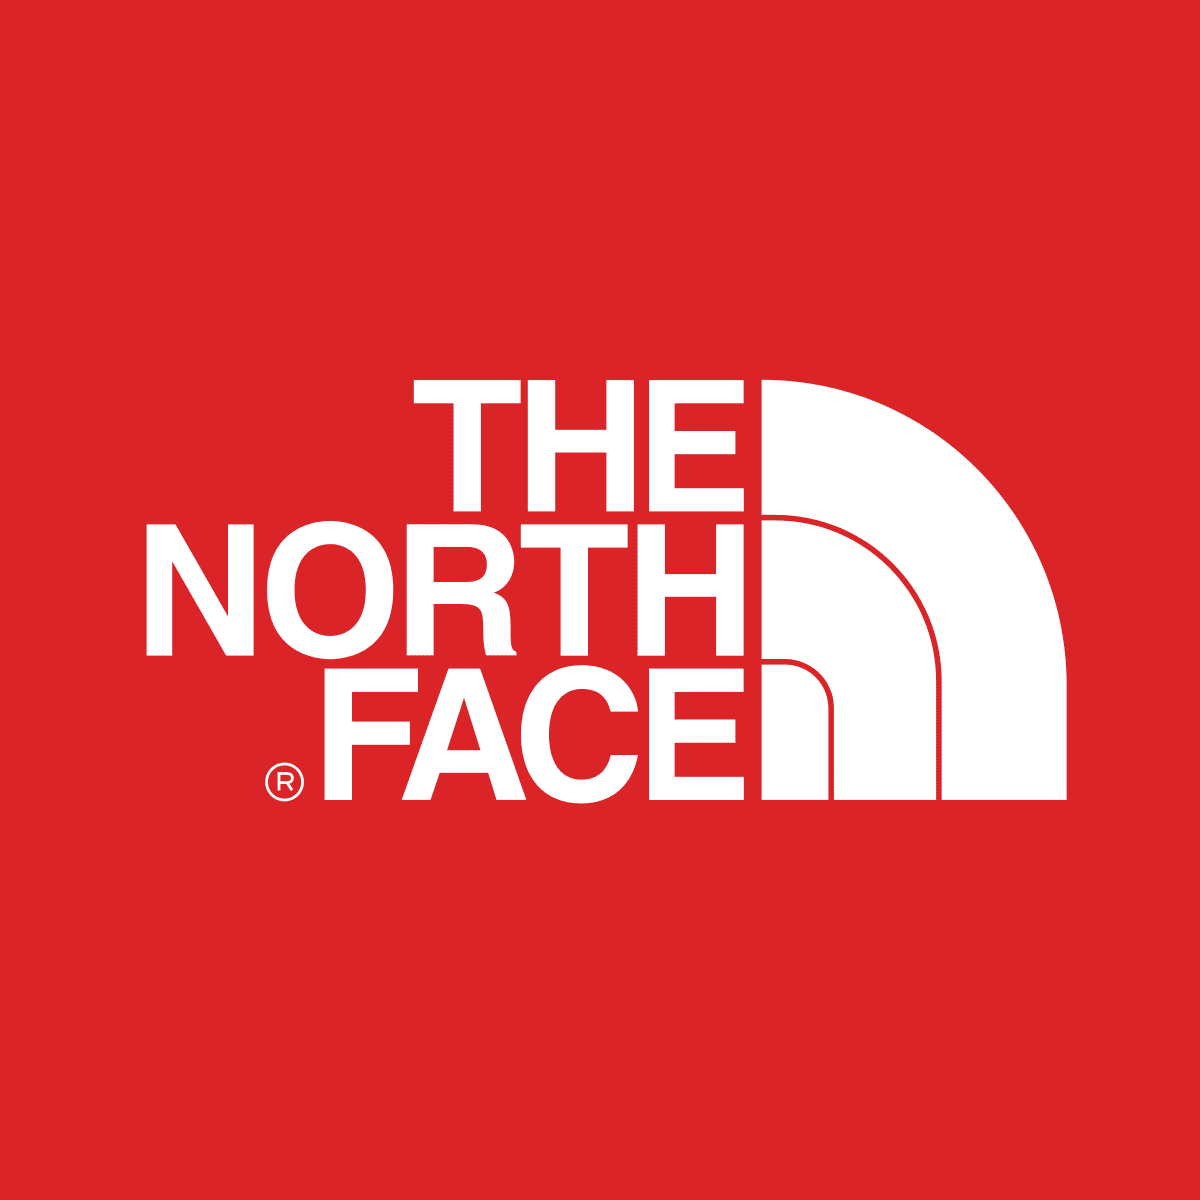 The North Face - Photoshoots